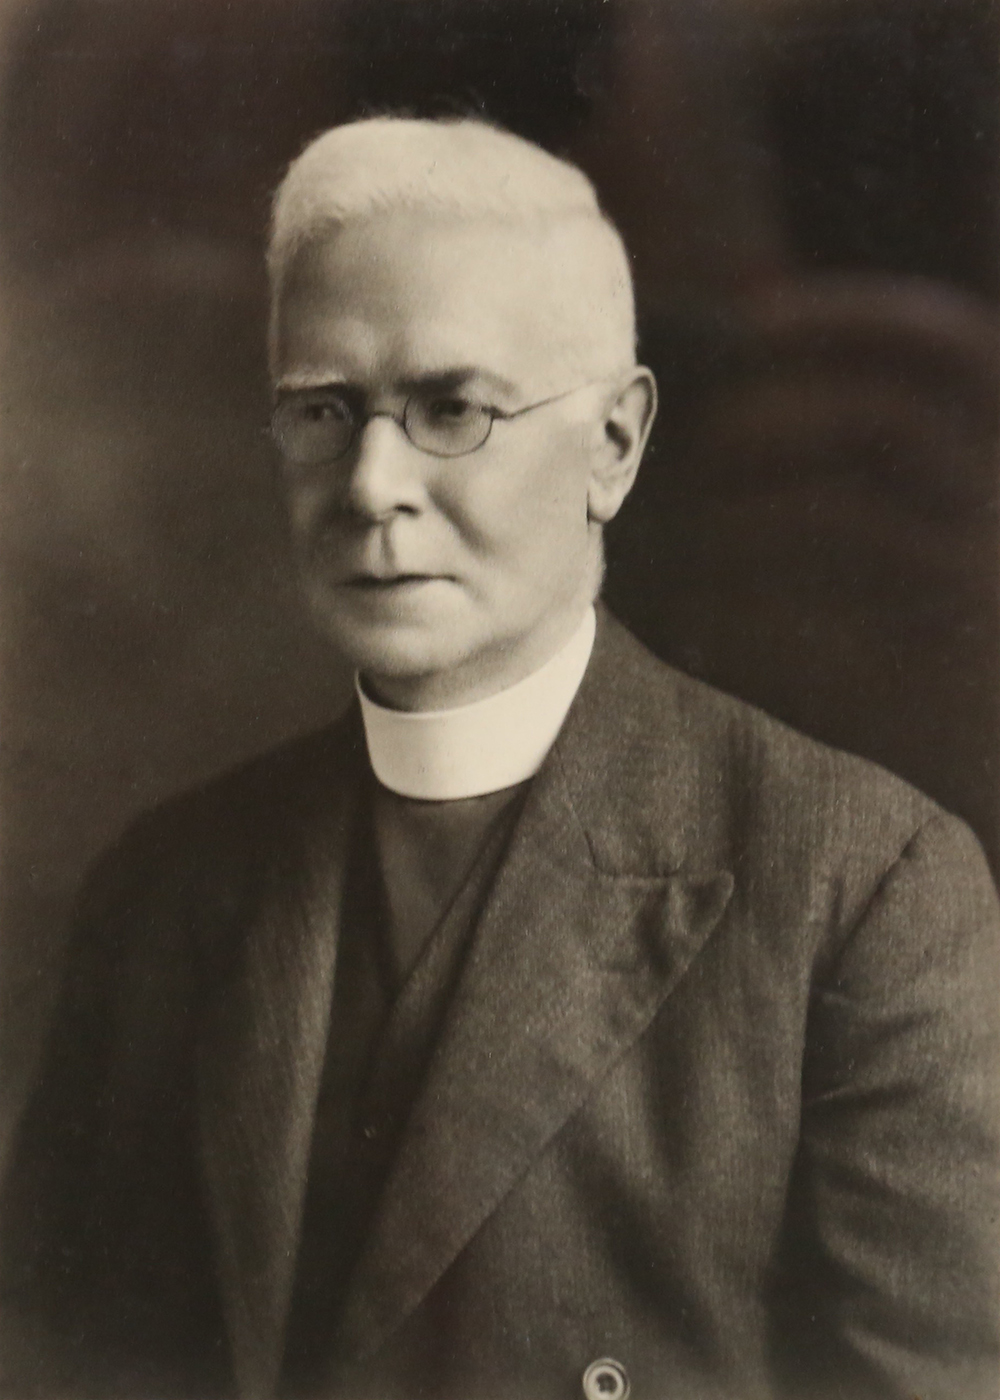 Rev. Parker Erskine Major  1886 - 1929